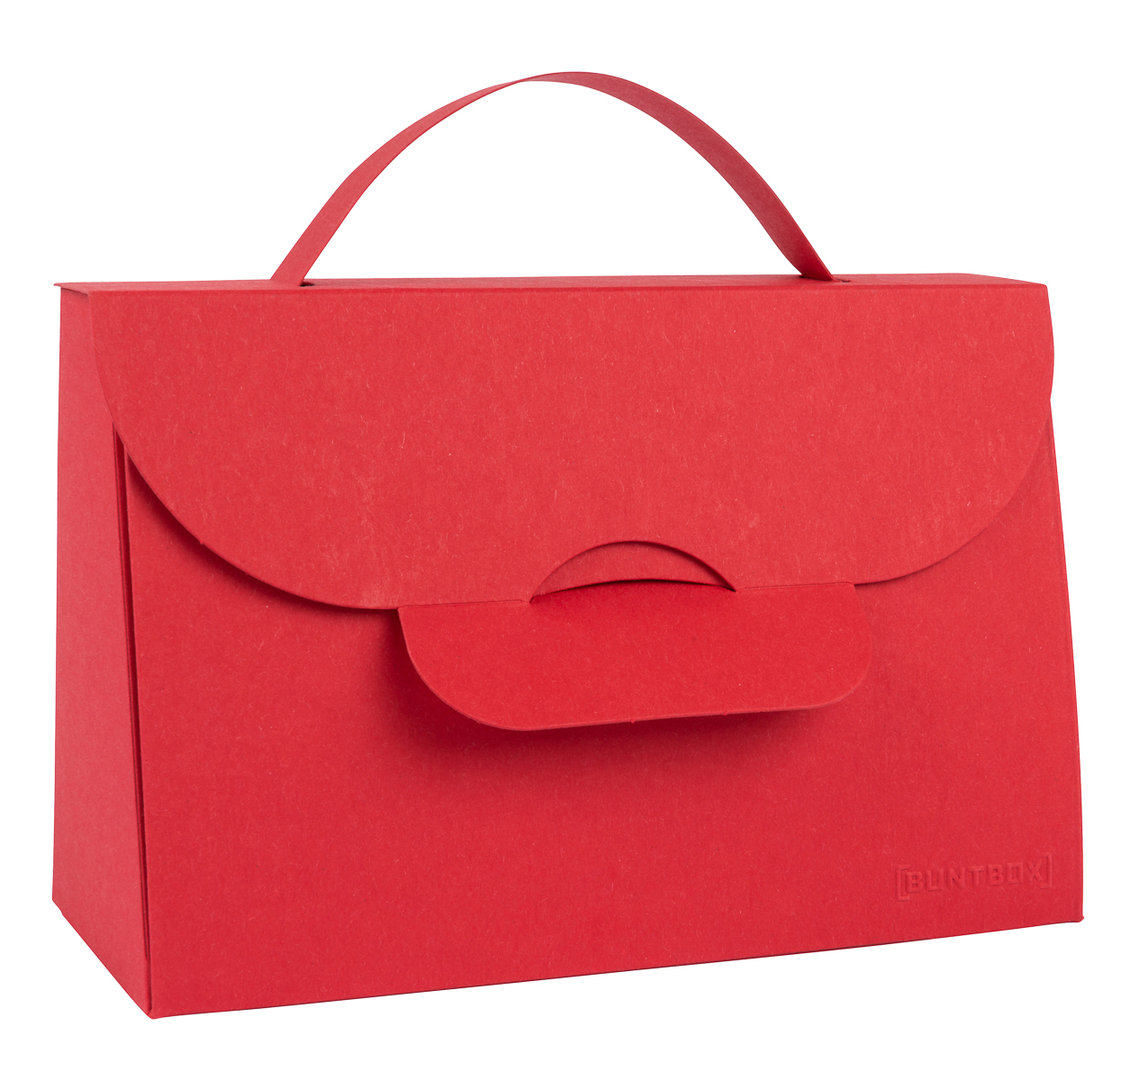 BUNTBOX Handbag M - Ruby